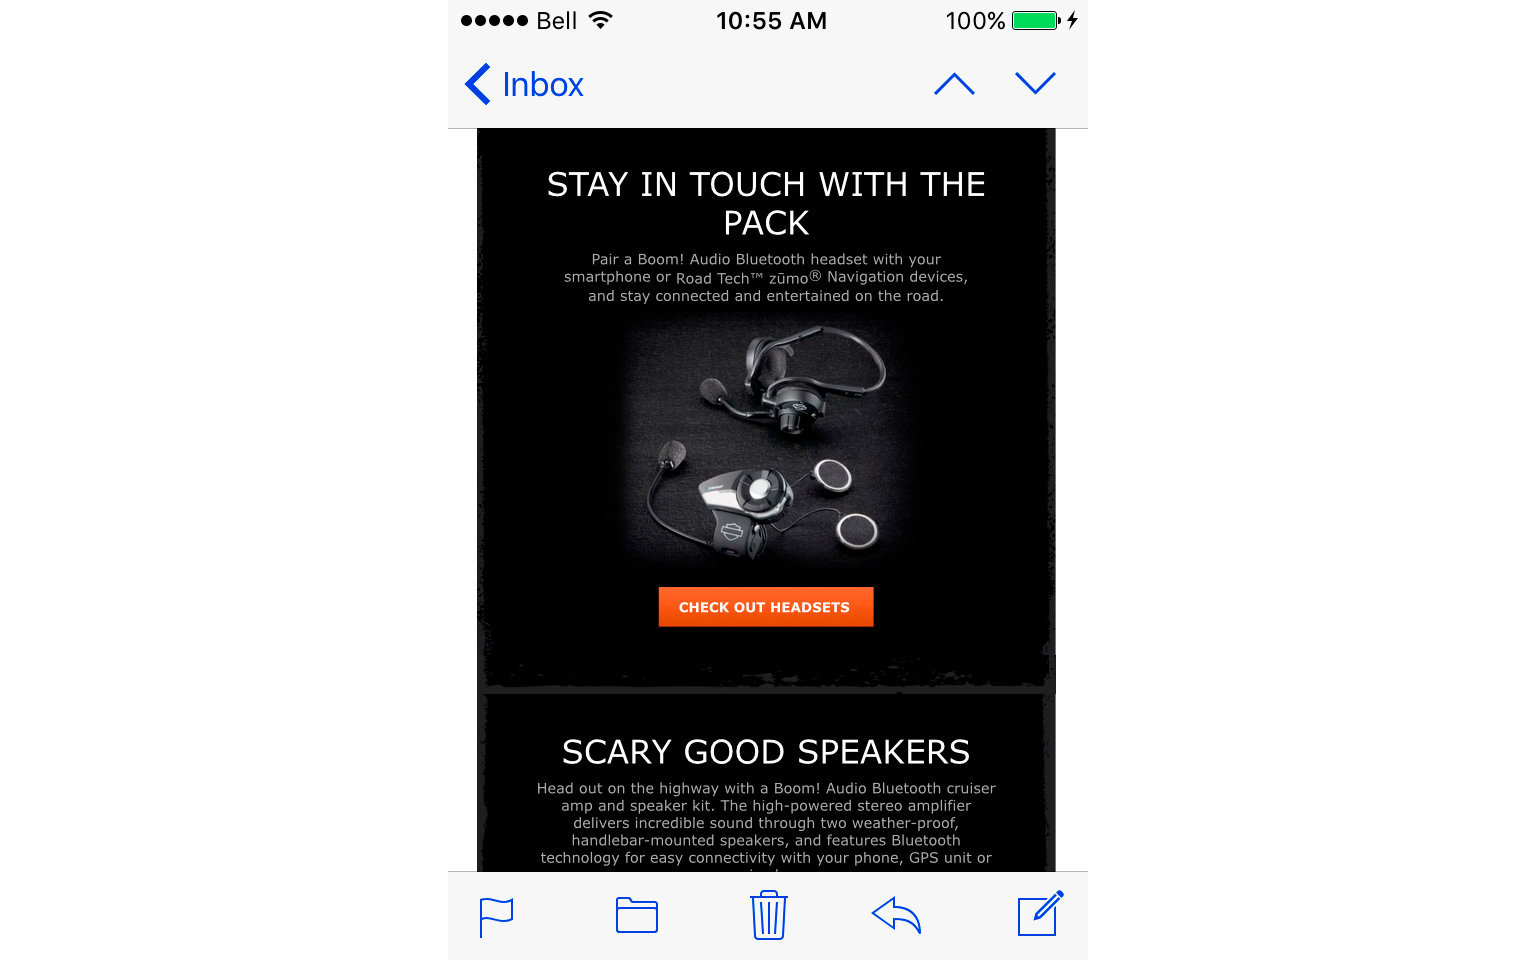 HARLEY-DAVIDSON ACCESSORIES EMAIL  6/10